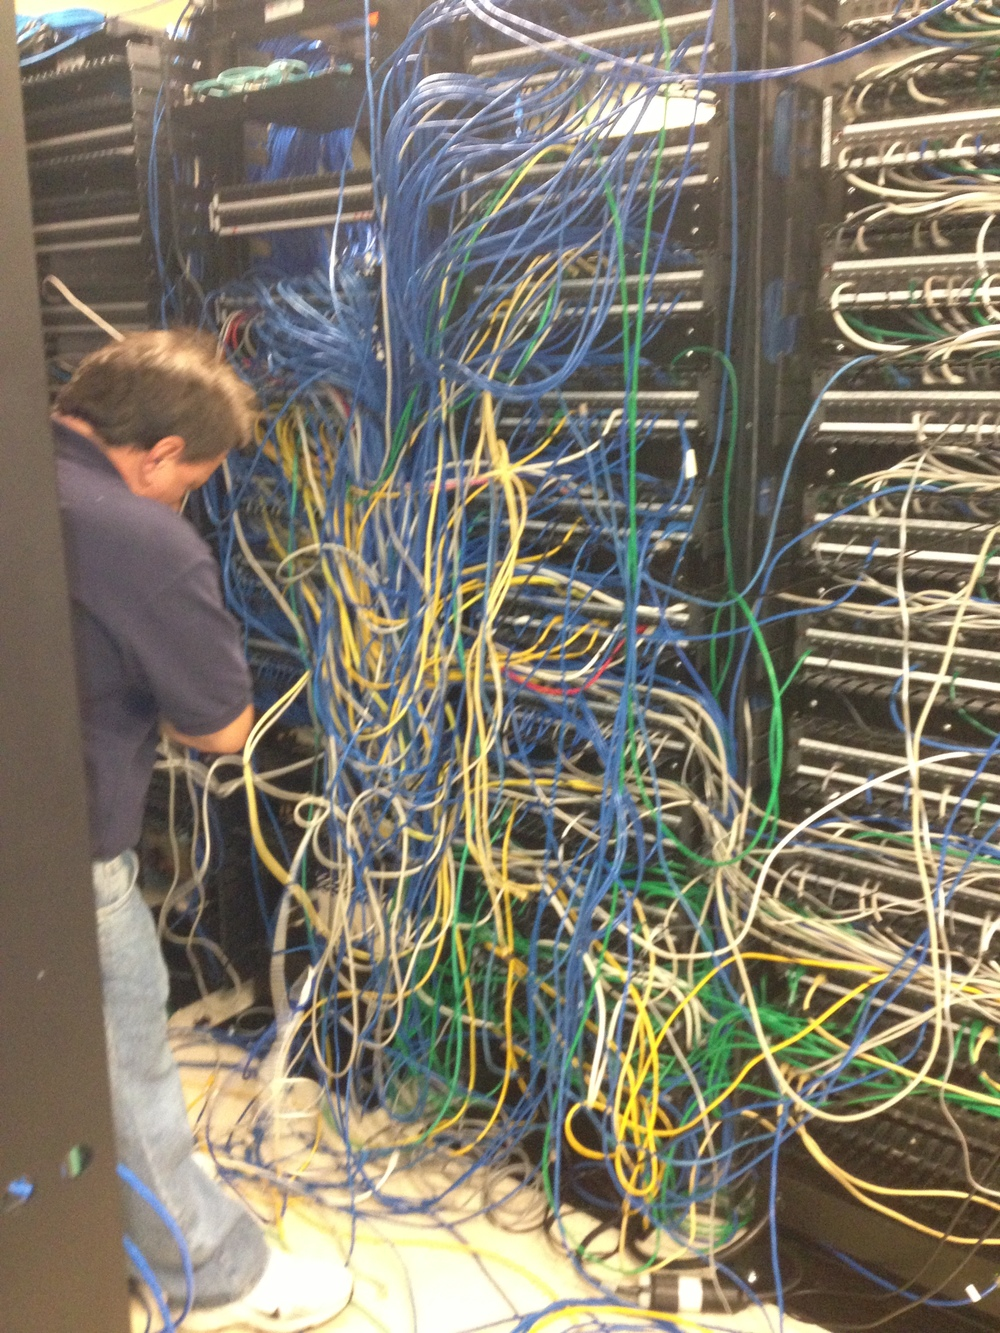 Server Equipment Room Cleanup Connectivity Llc Structured Cabling Wiring A Network Cable Before